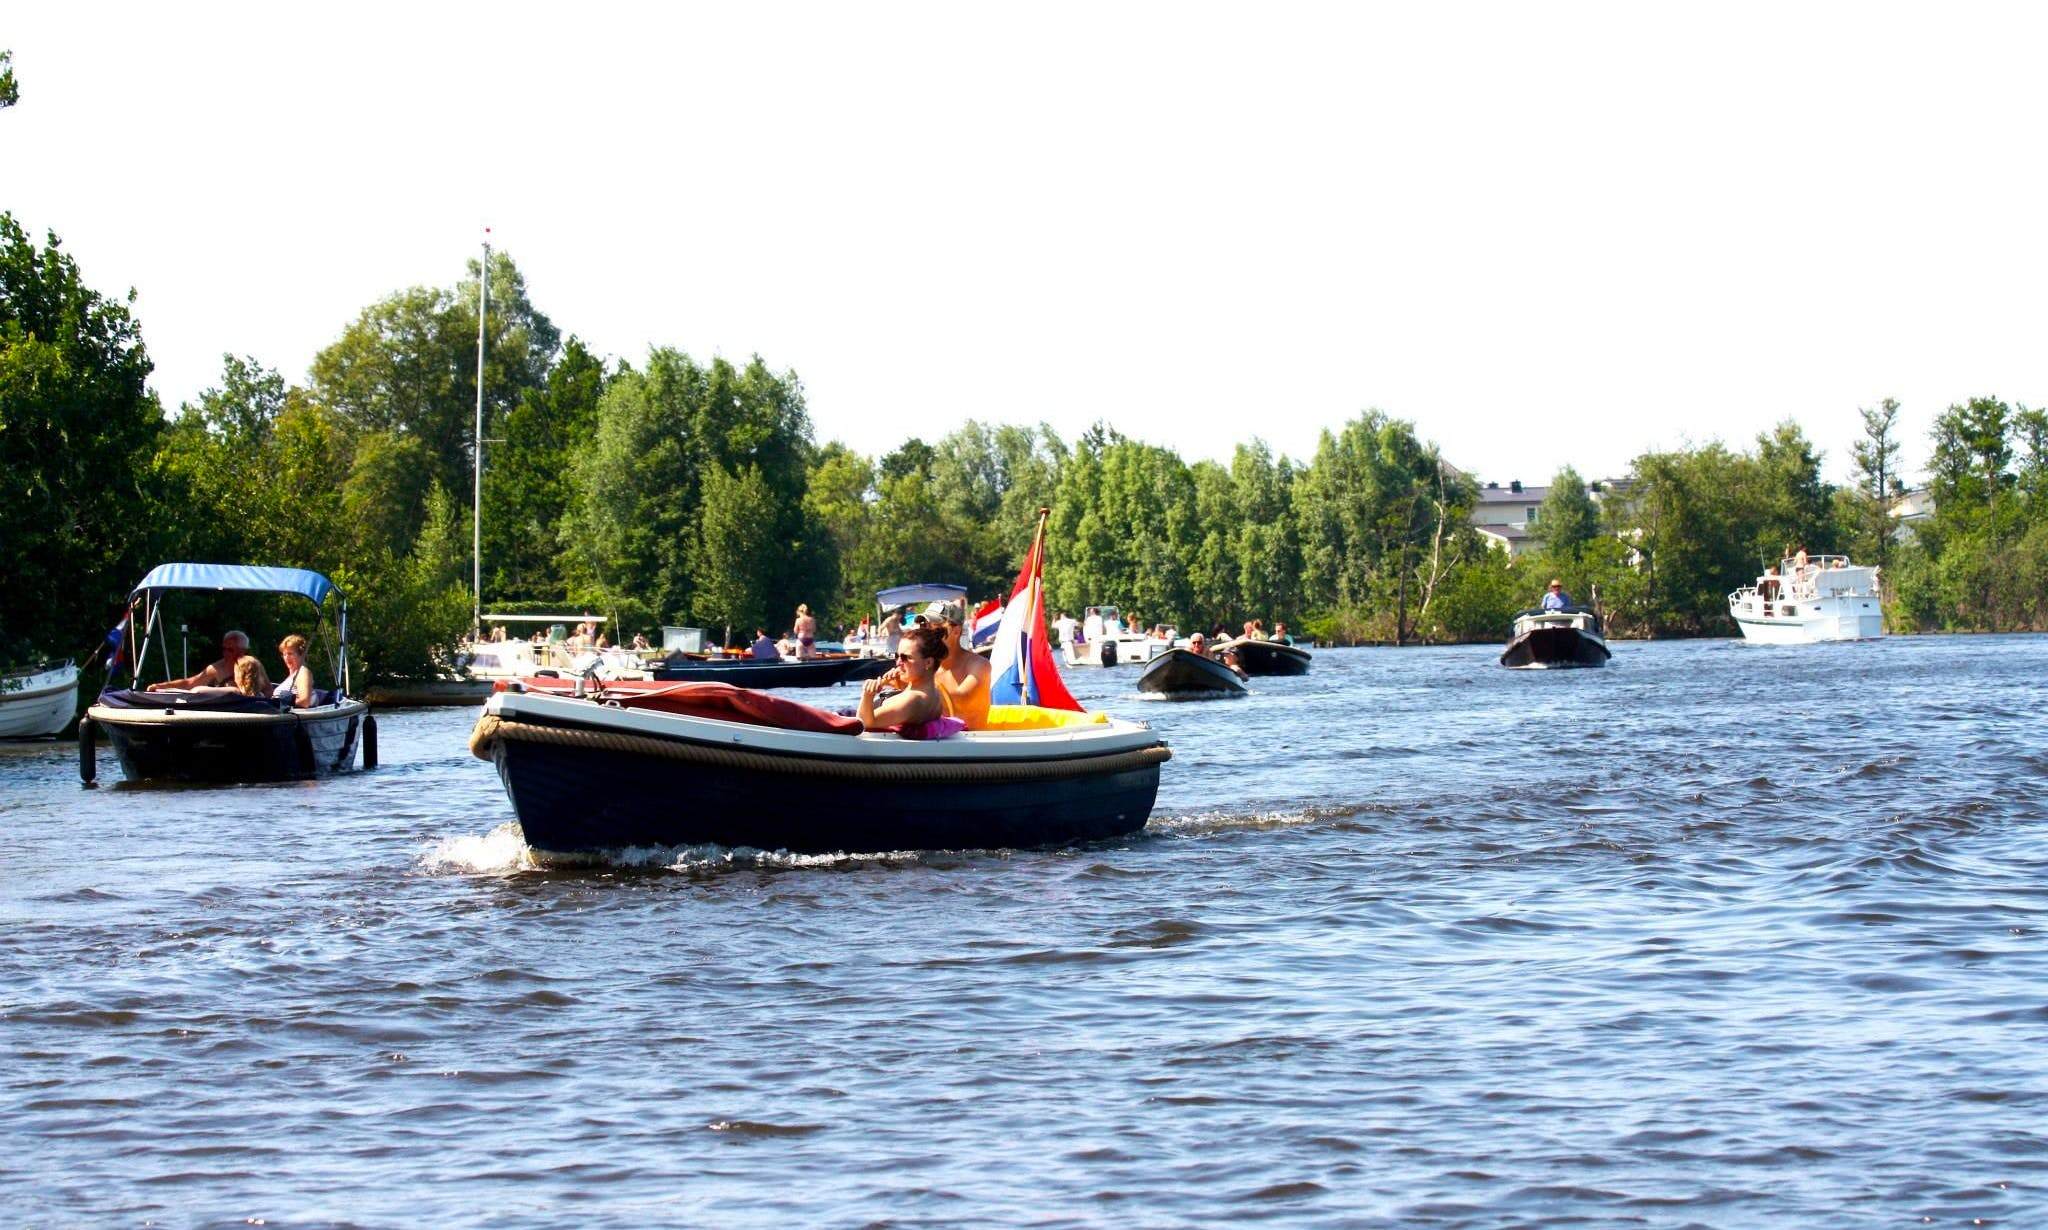 Westlander Round Boat Trips in Abcoude, Netherlands